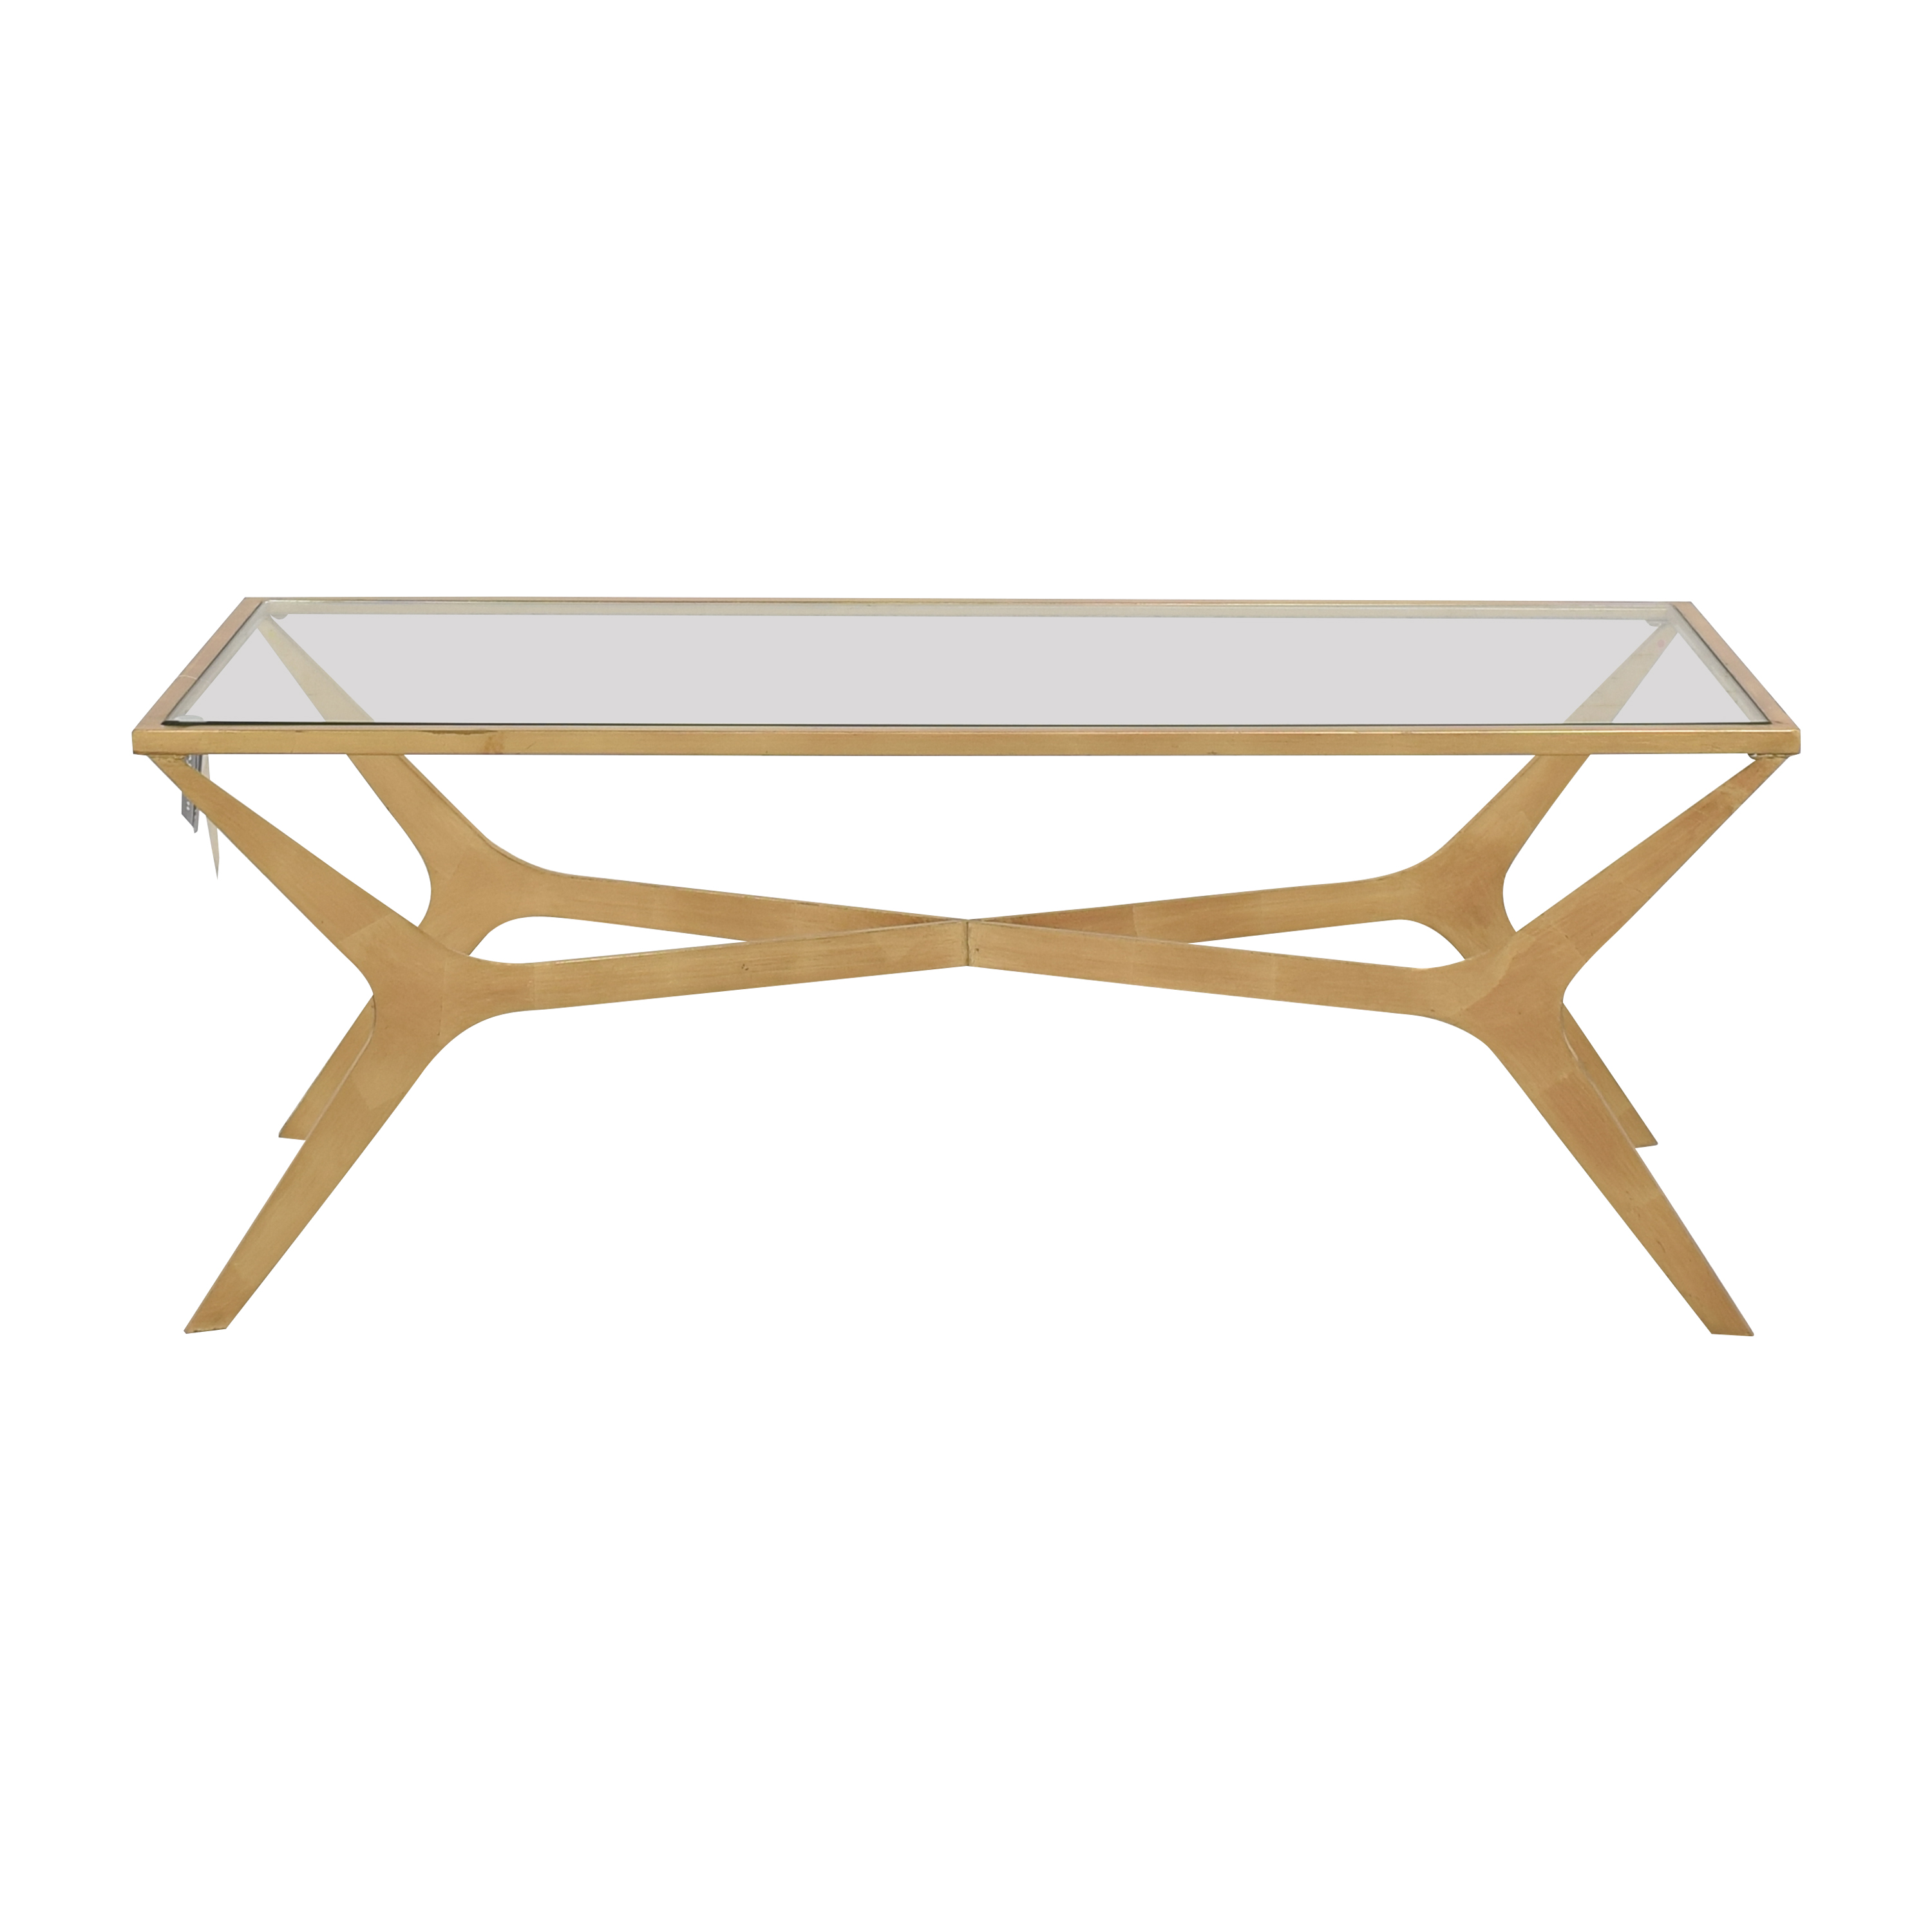 Safavieh Edythe Coffee Table Safavieh